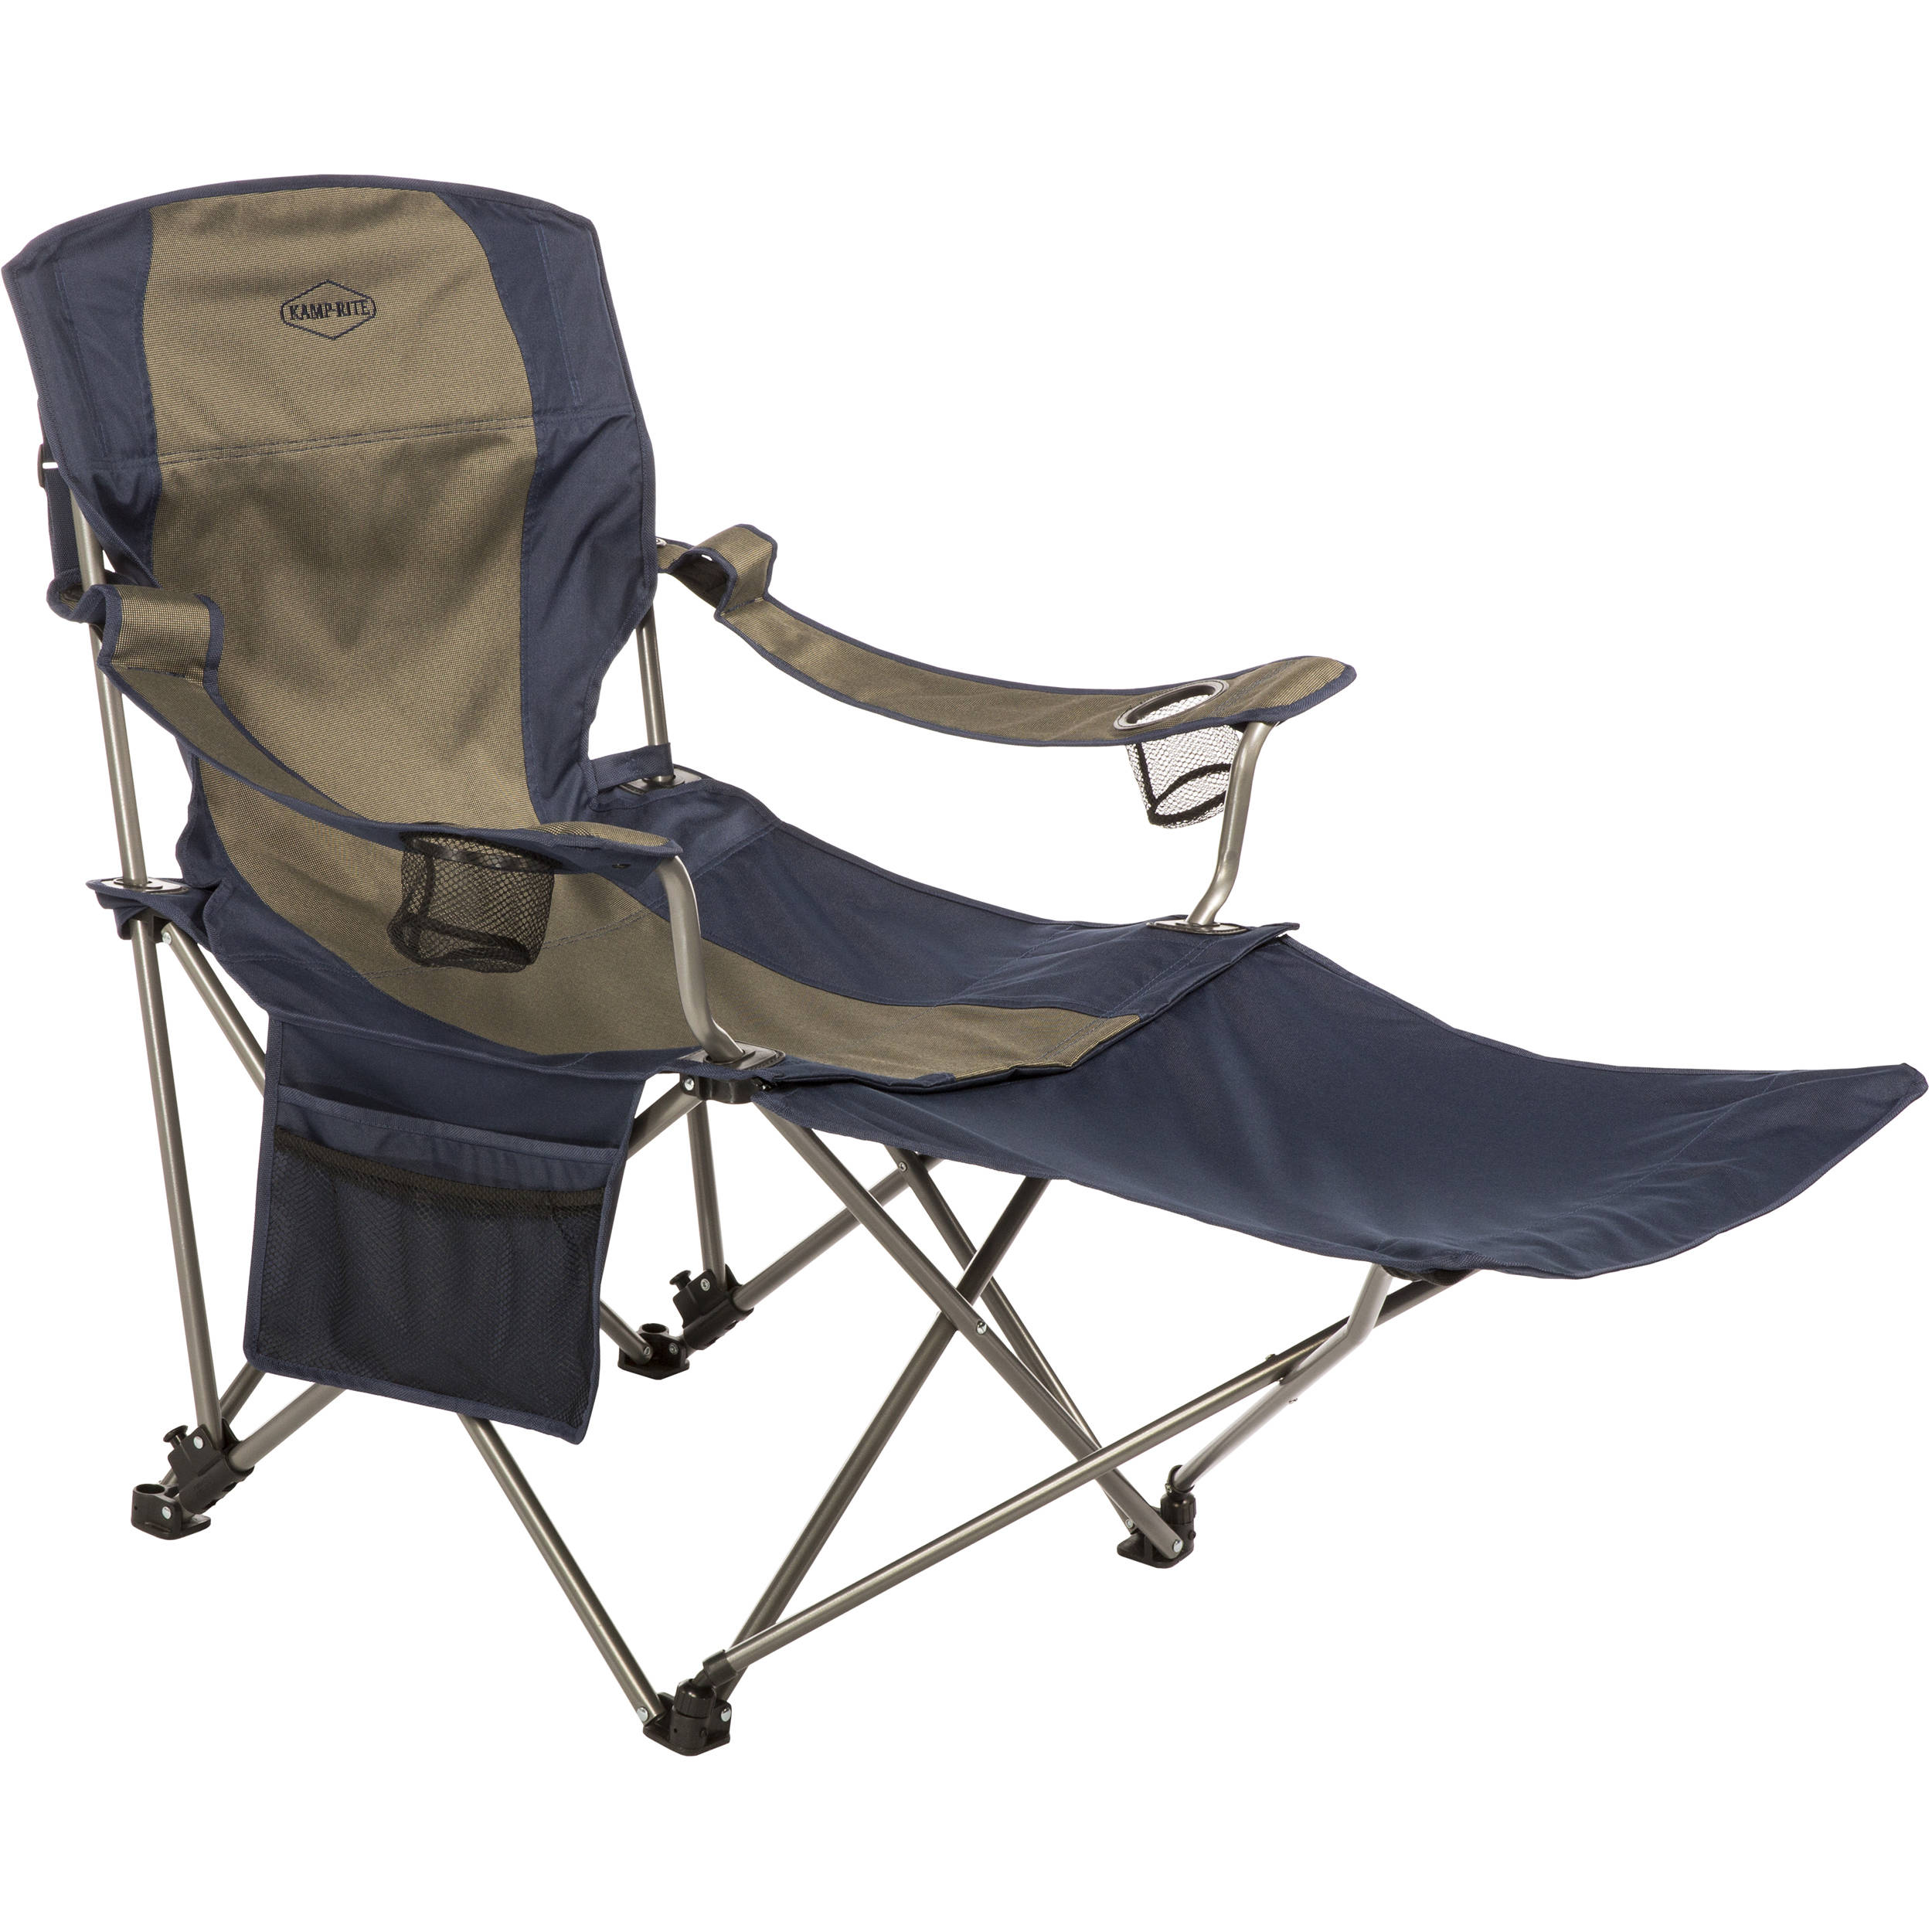 KAMP RITE Folding Chair with Removable Foot Rest CC231 B&H